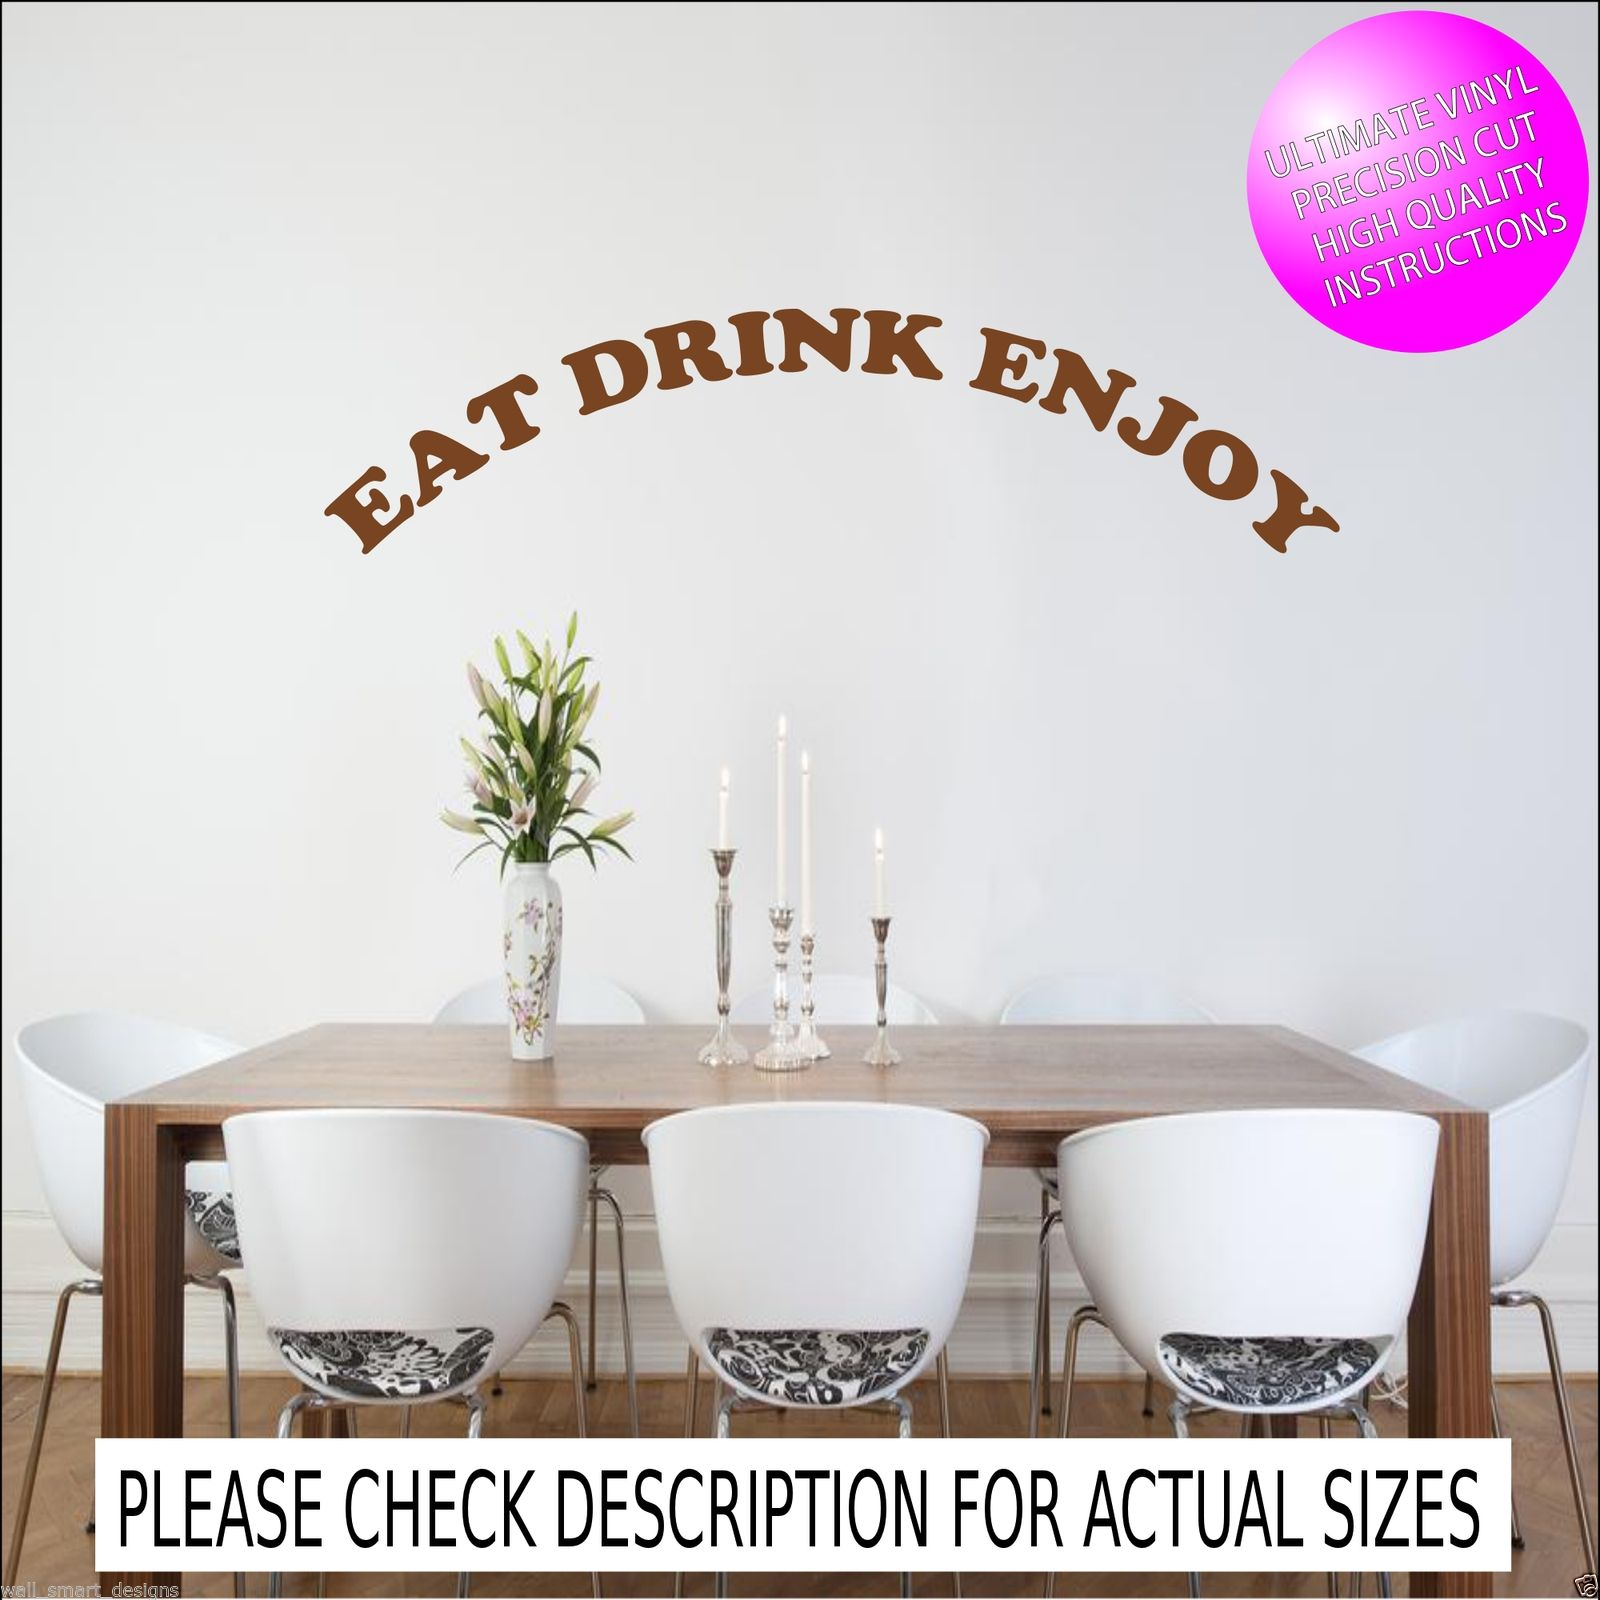 Family home quote rules vinyl wall art sticker mural decal home - Eat Drink Enjoy Kitchen Wall Quote Sticker Mural Decal